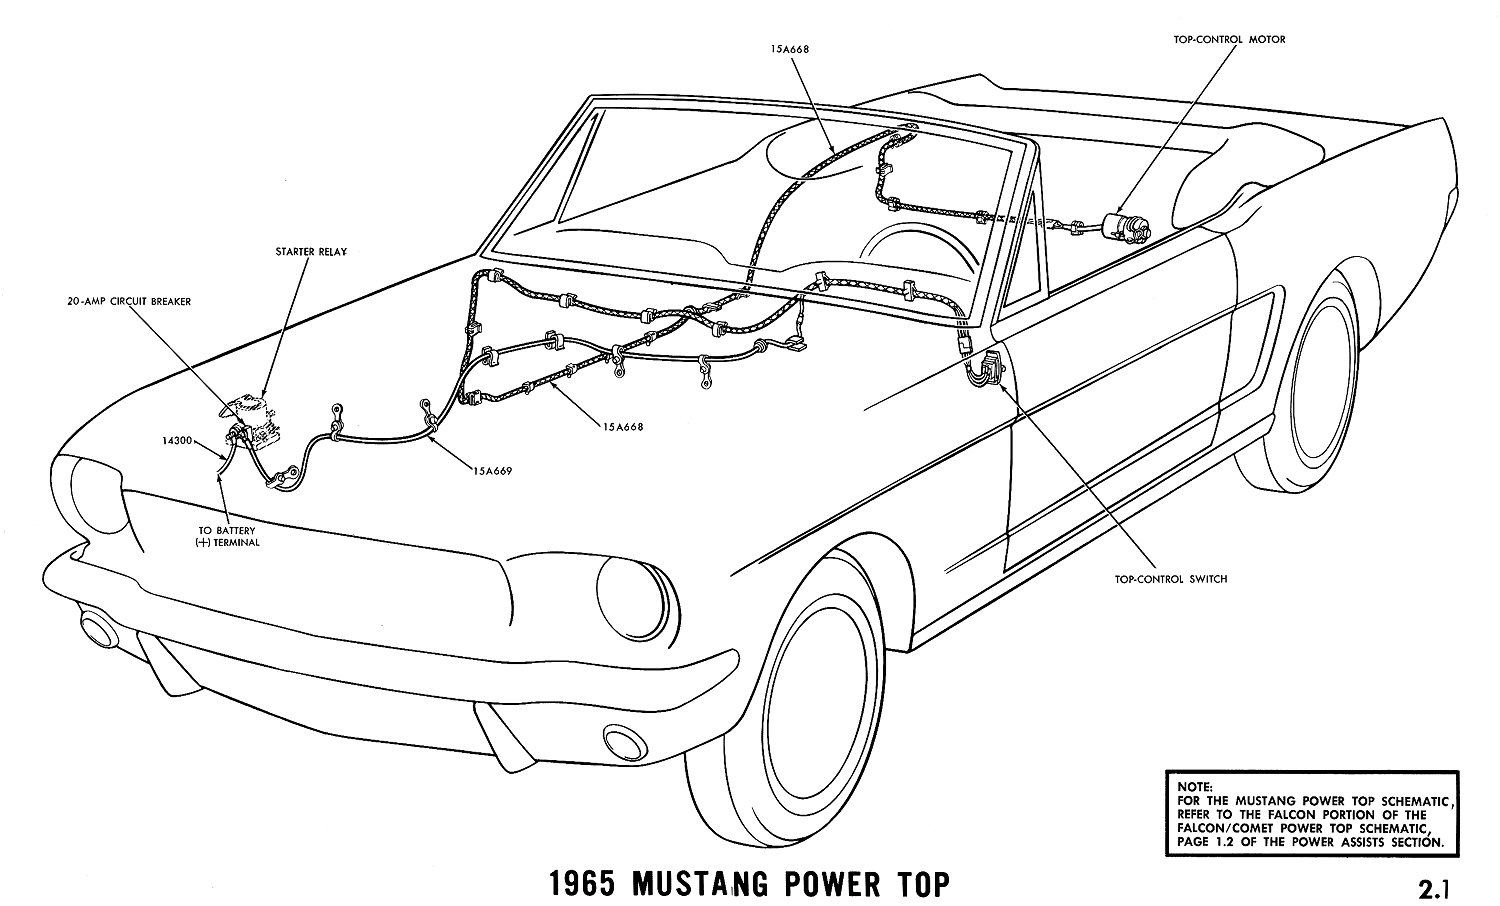 1965 Mustang Wiring Diagrams Average Joe Restoration Block Alternator Without Power Steering Diagram For A 1969 Corvette Top Pictorial Or Schematic